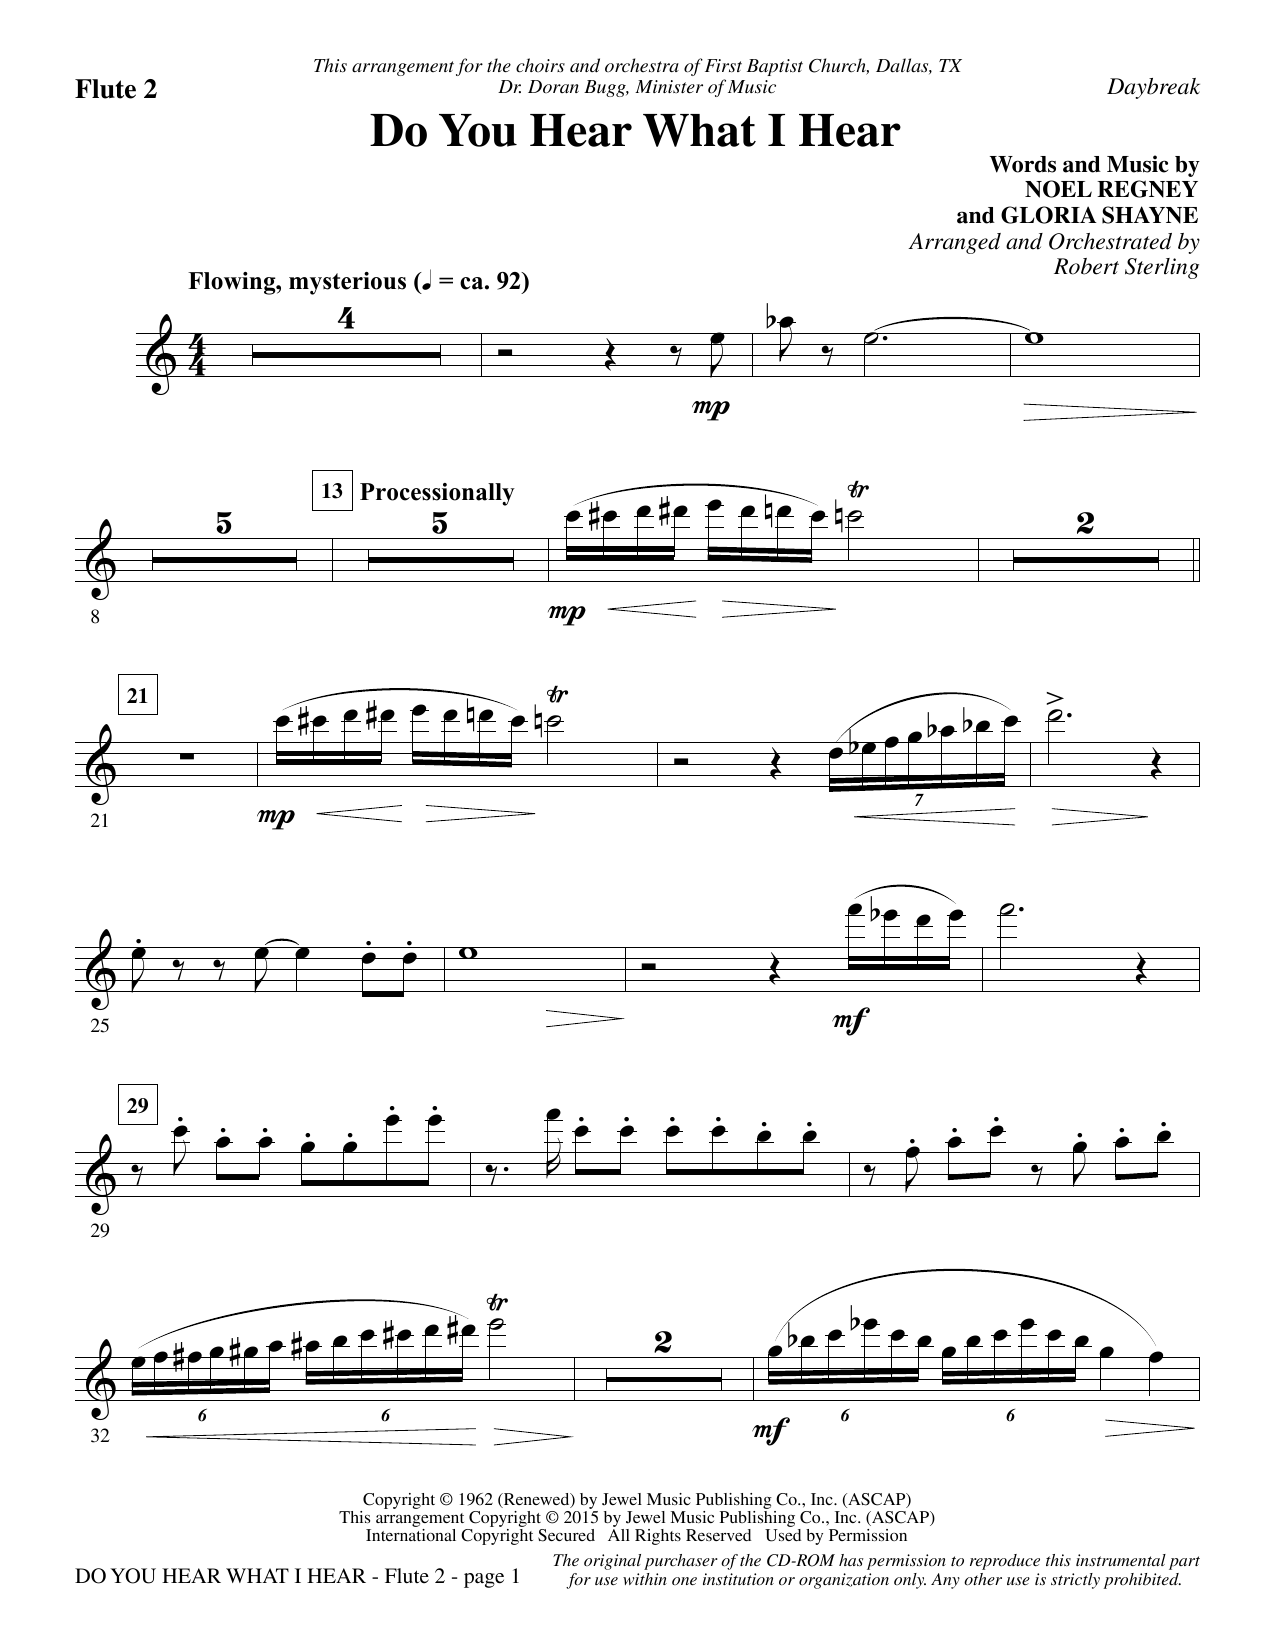 Do You Hear What I Hear - Flute 2 Sheet Music